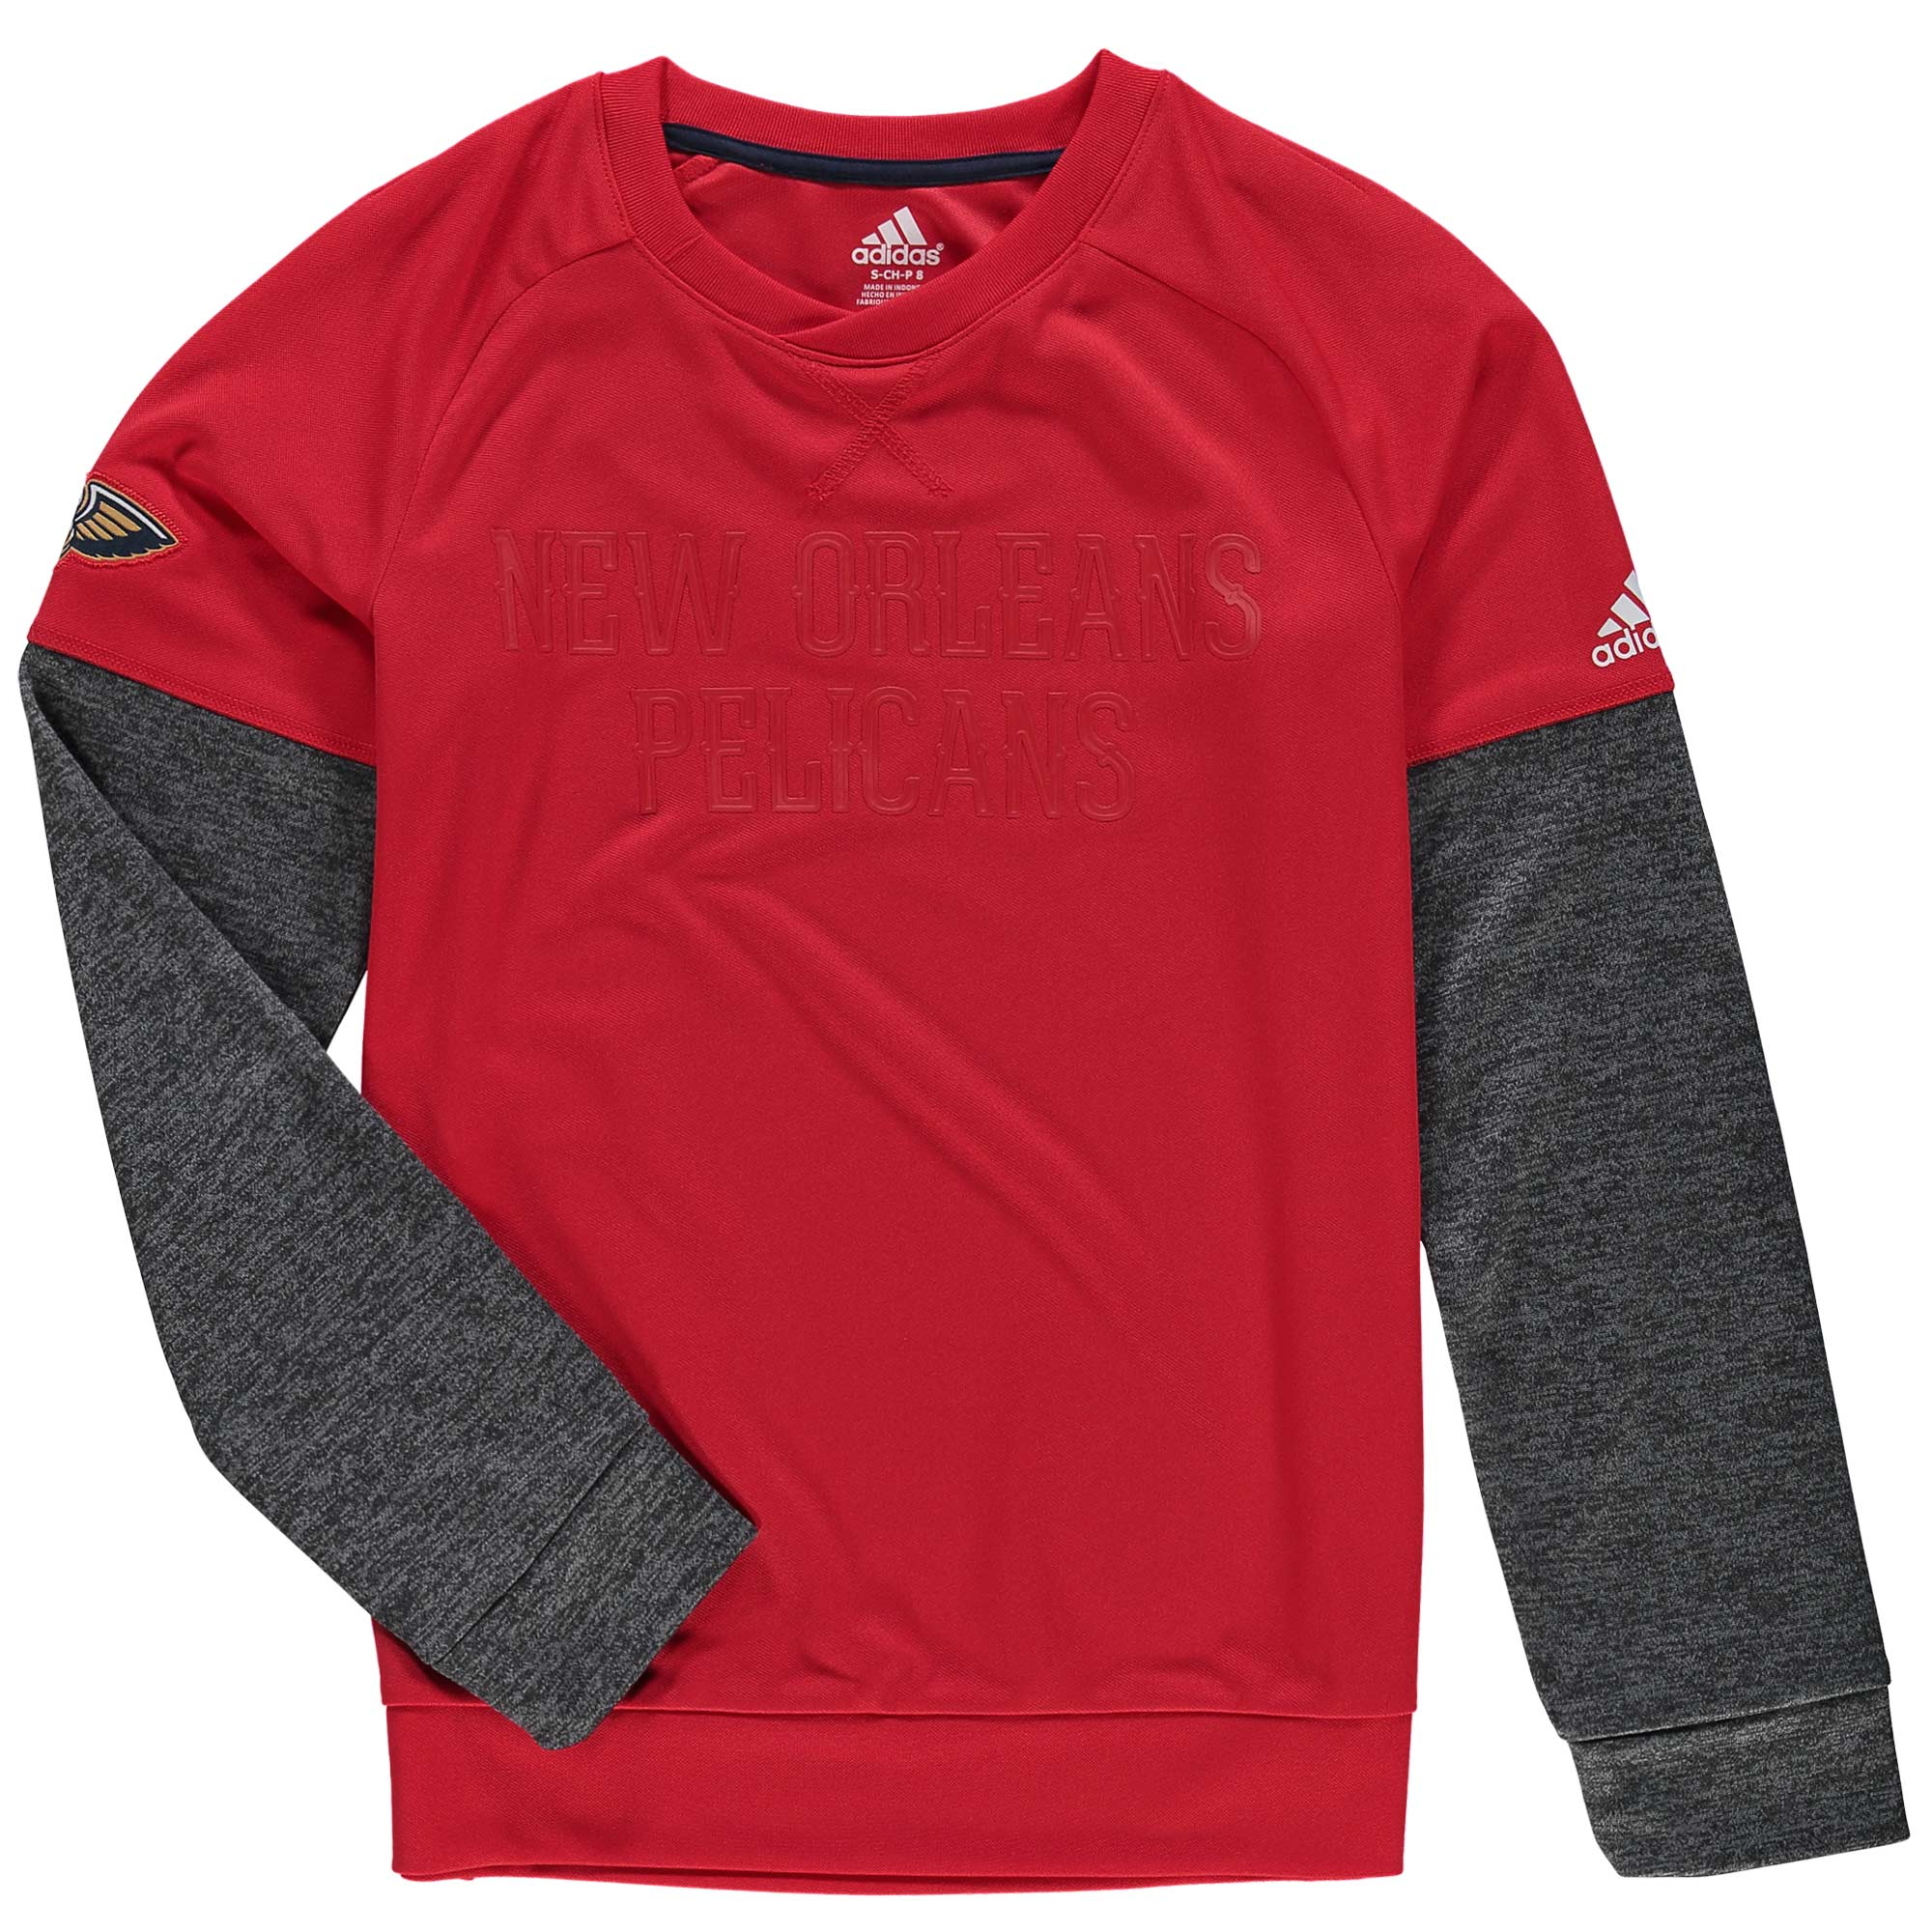 New Orleans Pelicans adidas Youth On-Court Shooter Sweatshirt - Red